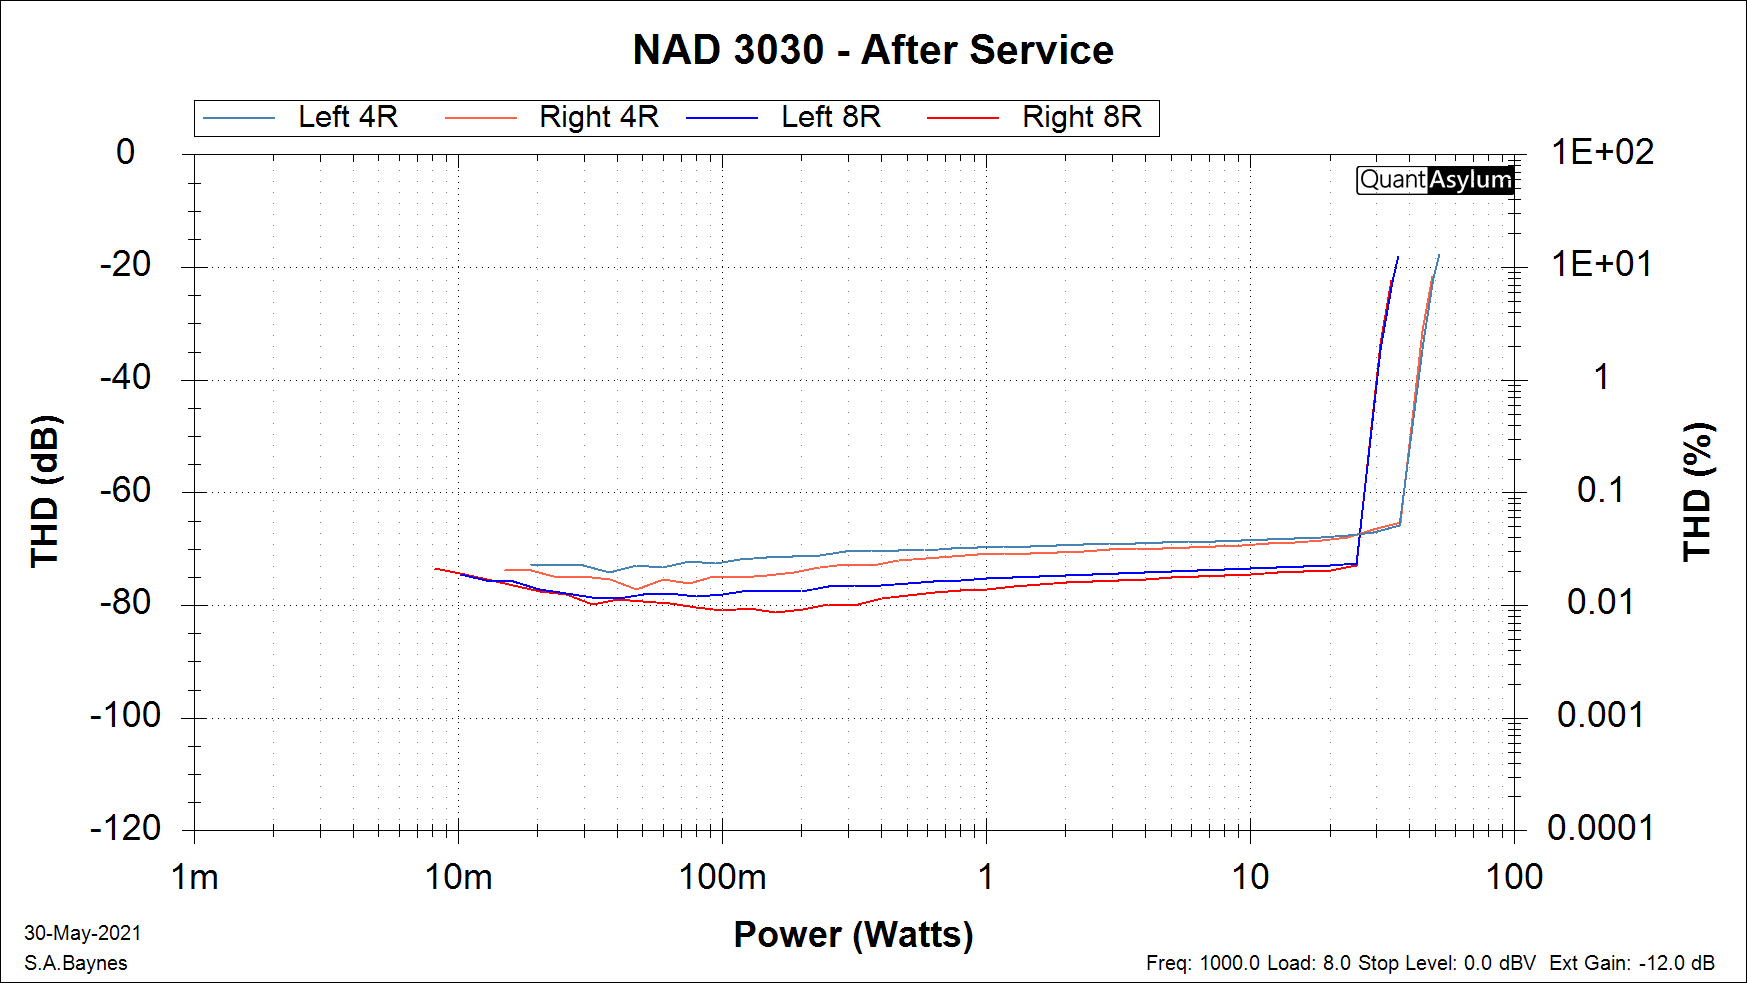 NAD 3030 Power vs THD - After Service.png